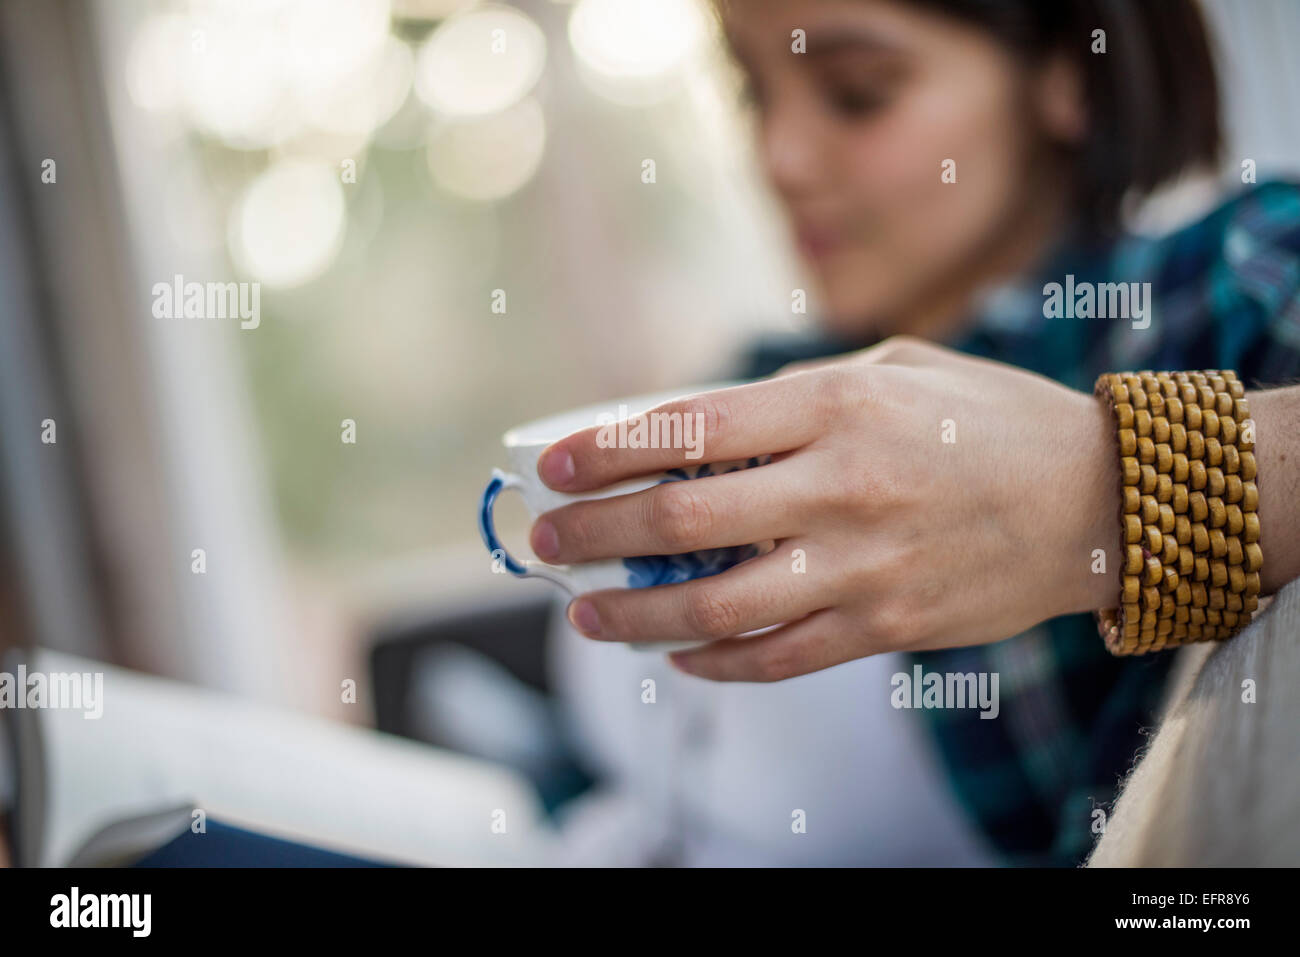 Close up of a woman's hand holding a tea cup, wearing a bracelet. Stock Photo